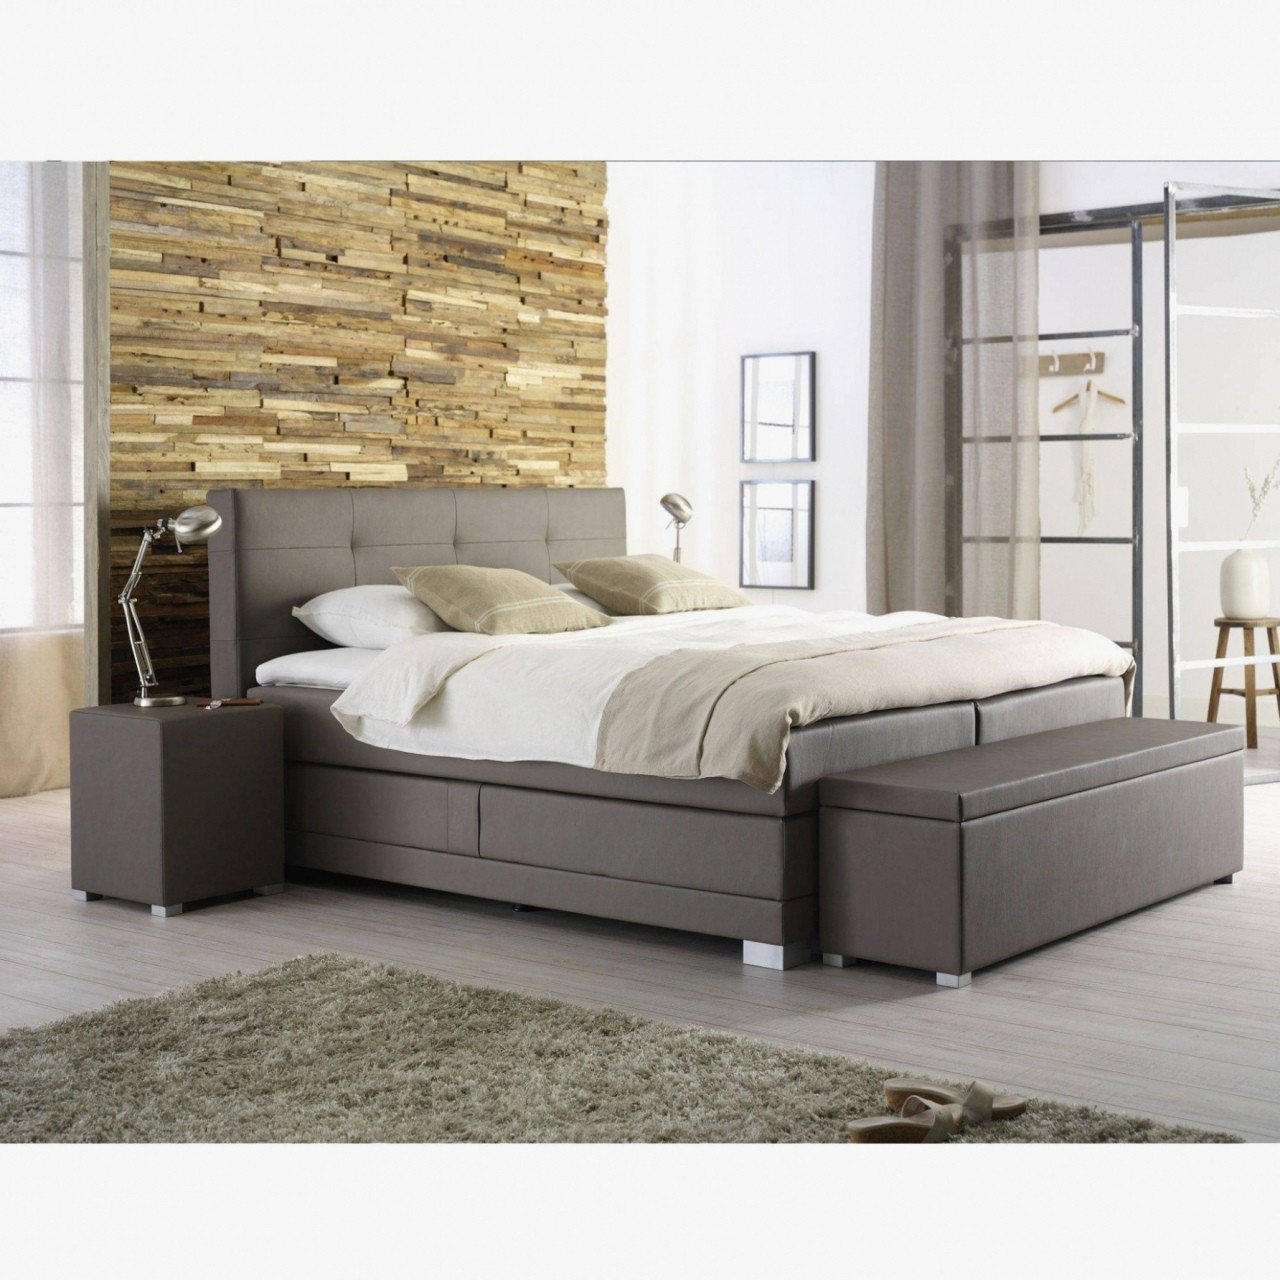 King Bedroom Furniture Set Lovely Bed with Drawers Under — Procura Home Blog